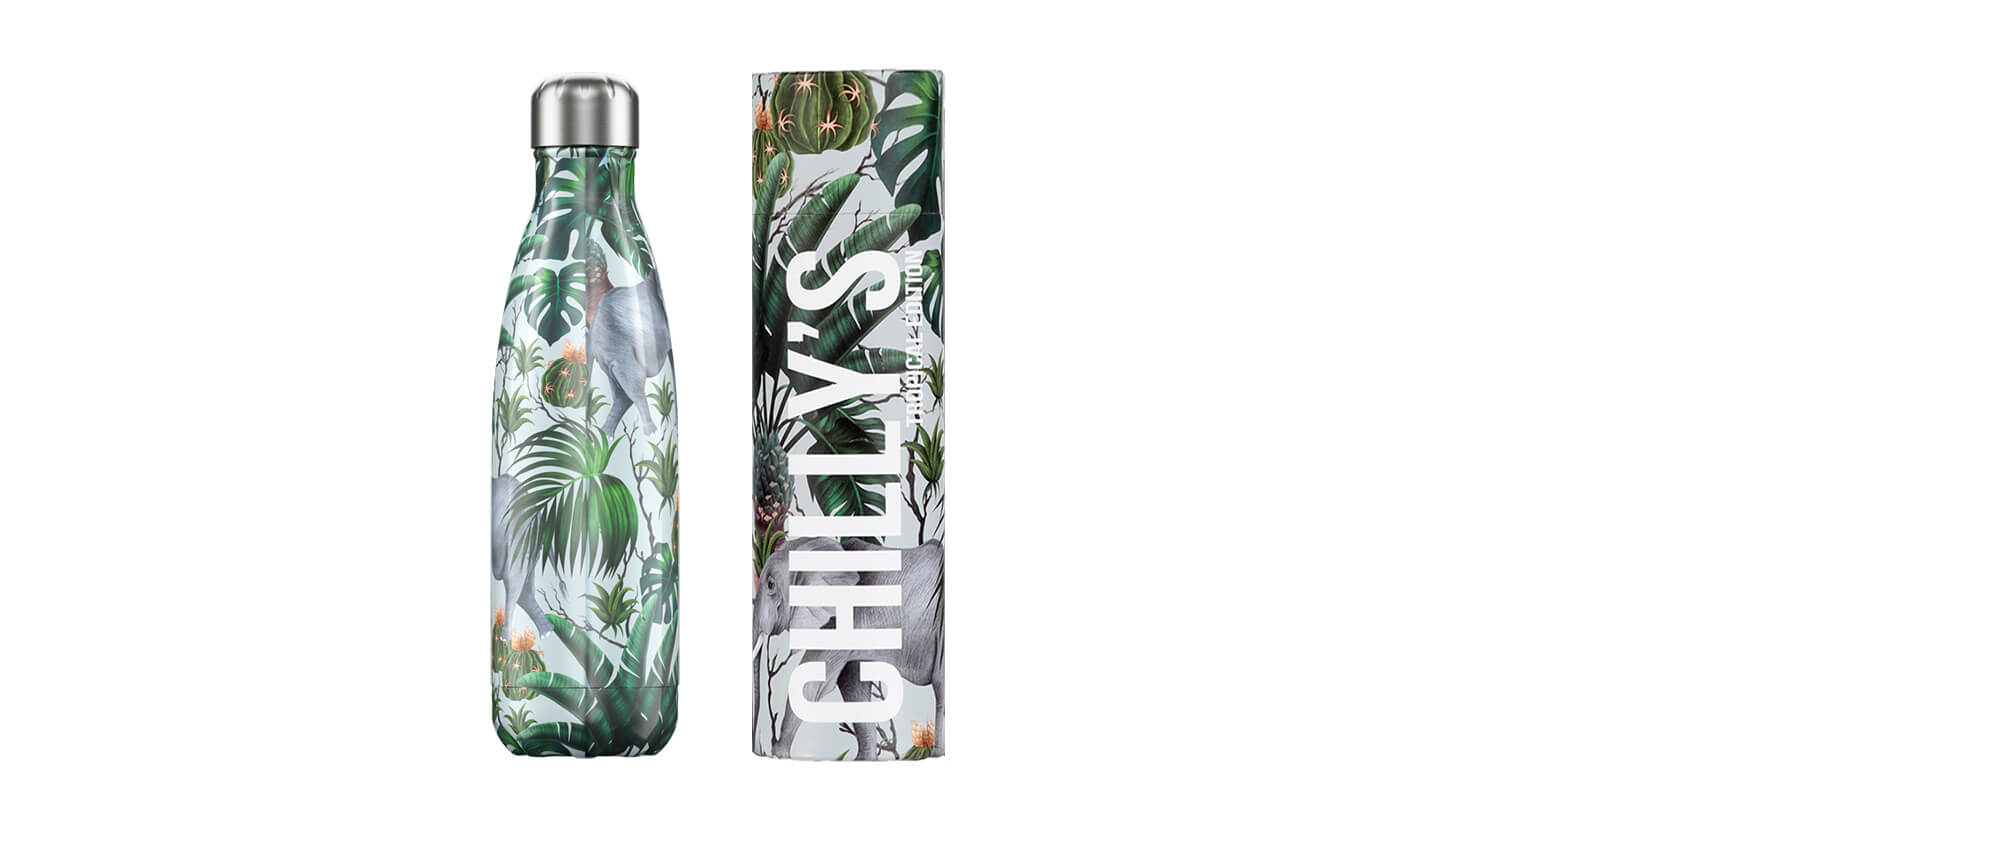 Insulated BPA-free Reusable Bottle by Chilly